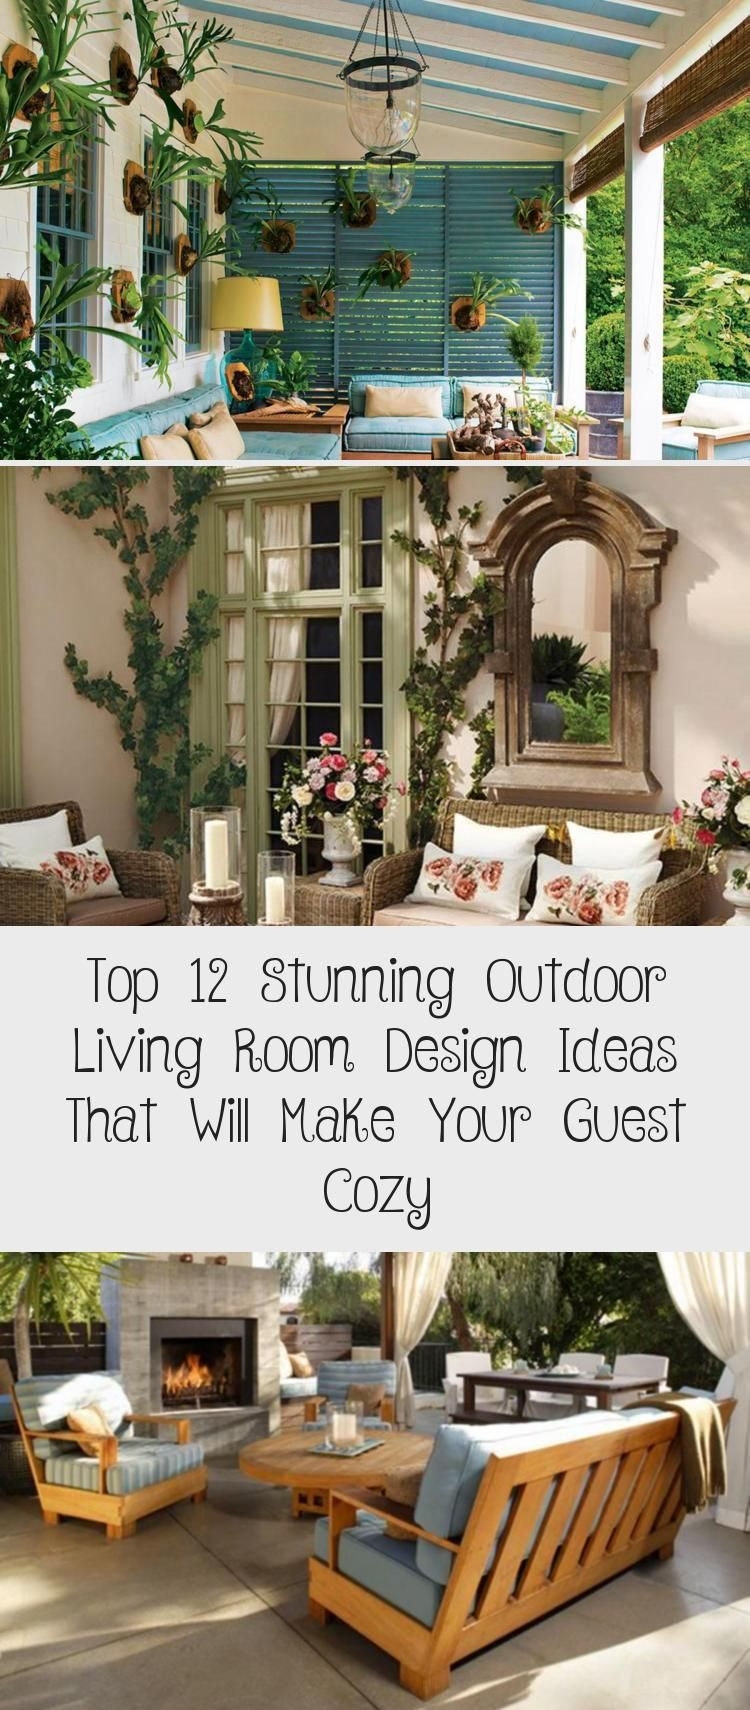 Top 12 Stunning Outdoor Living Room Design Ideas That Will Make Your Guest Cozy Buying Home In 2020 Outdoor Living Room Cozy House Modern Outdoor Living